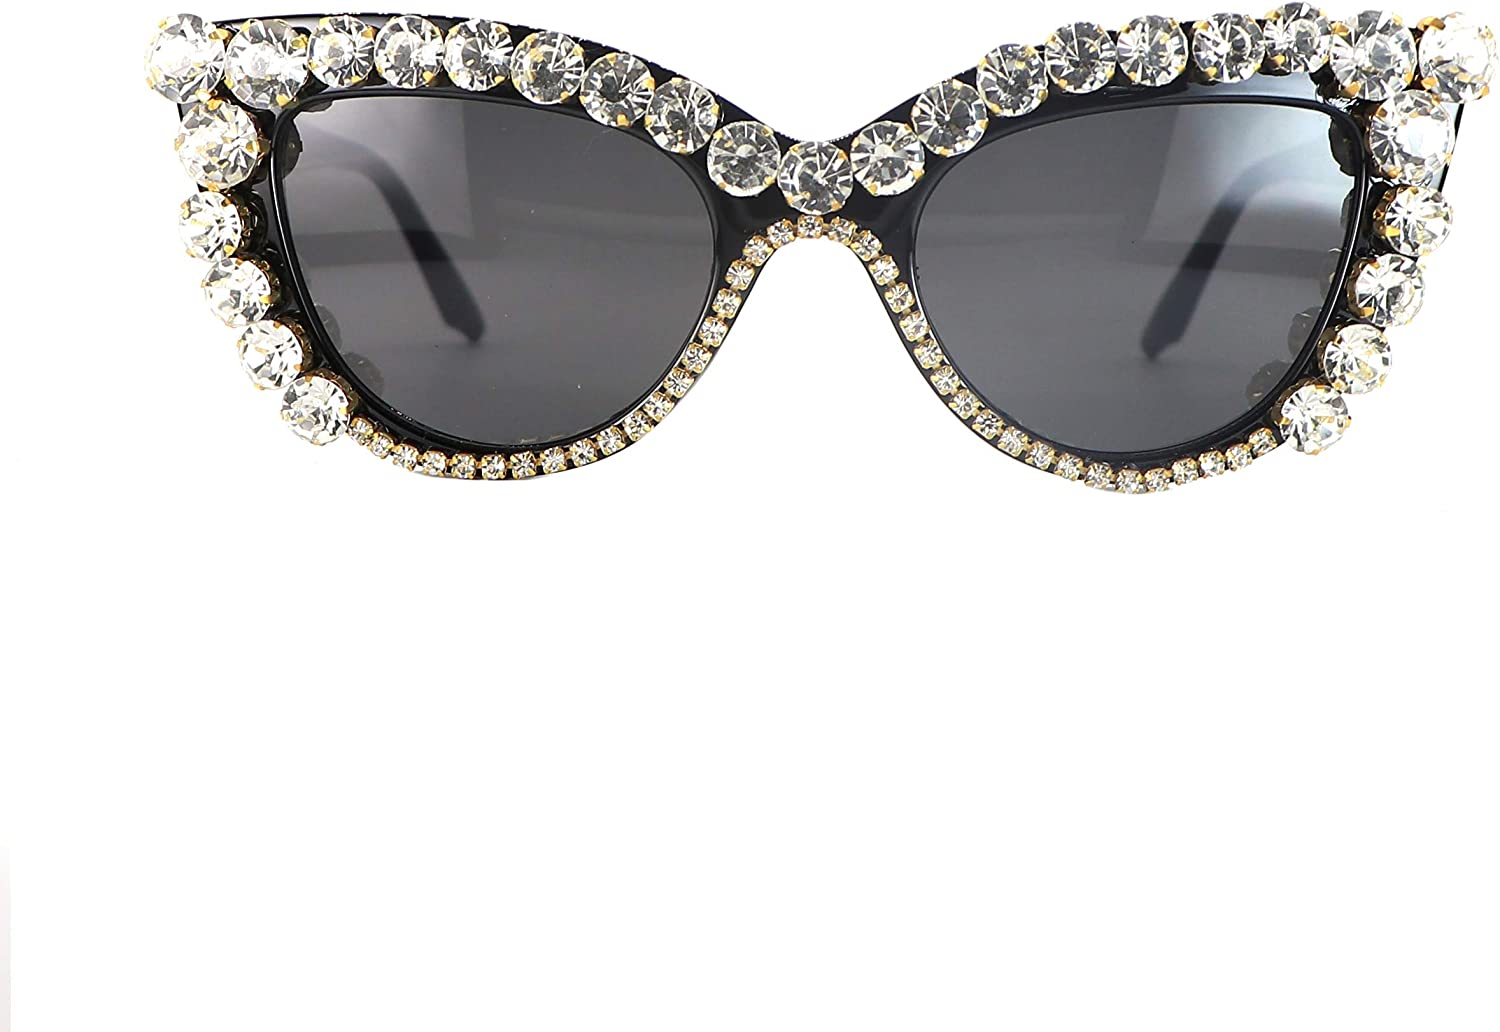 EXAGGERATED Classy Luxury Retro SUNGLASSES Square Frame Bling Sparkling Crystals